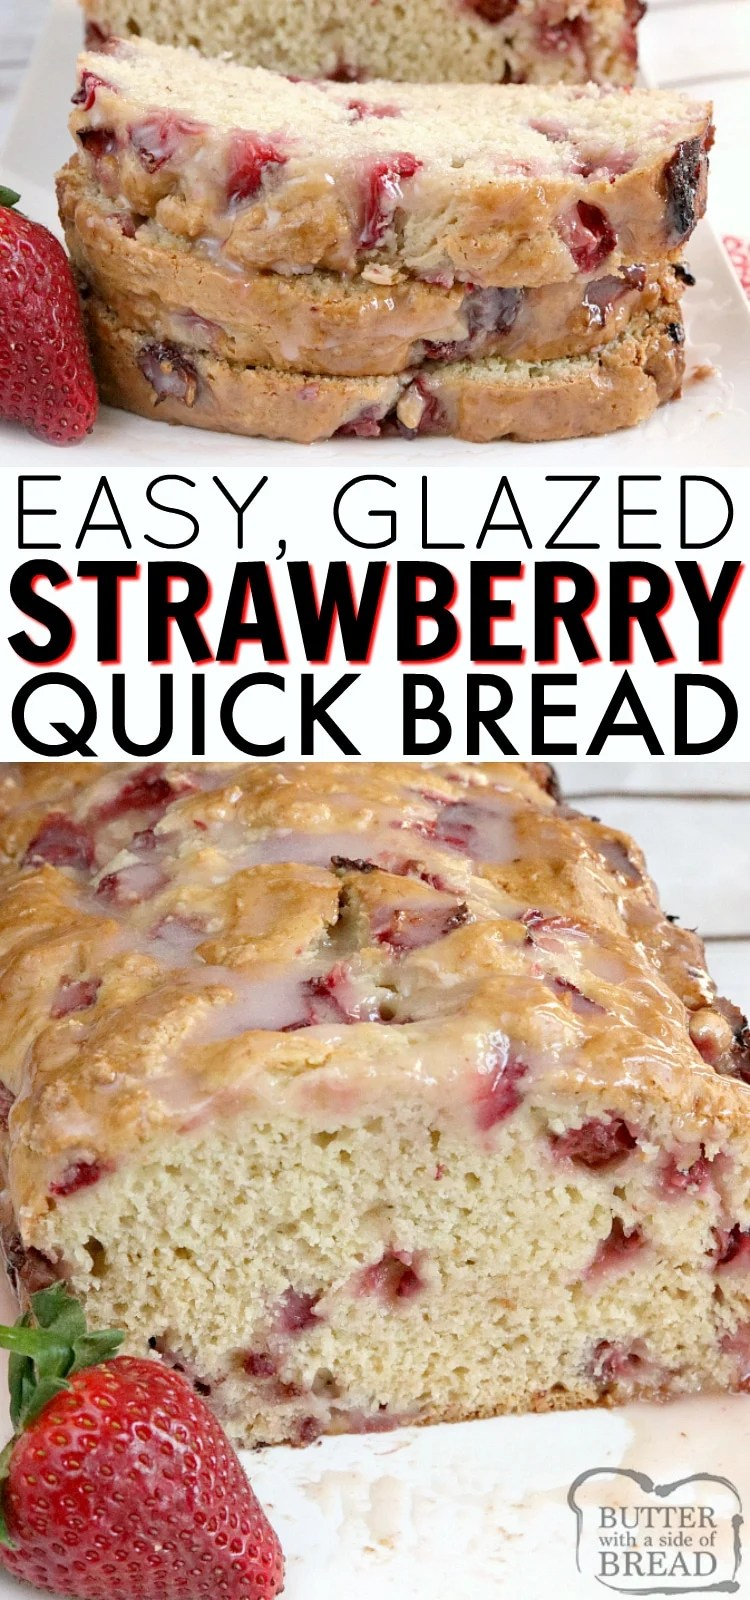 Glazed Strawberry Bread is an easy quick bread that is moist, sweet, full of fresh strawberries, and then topped with a simple strawberry glaze. This easy bread recipe is simple to make and absolutely delicious!